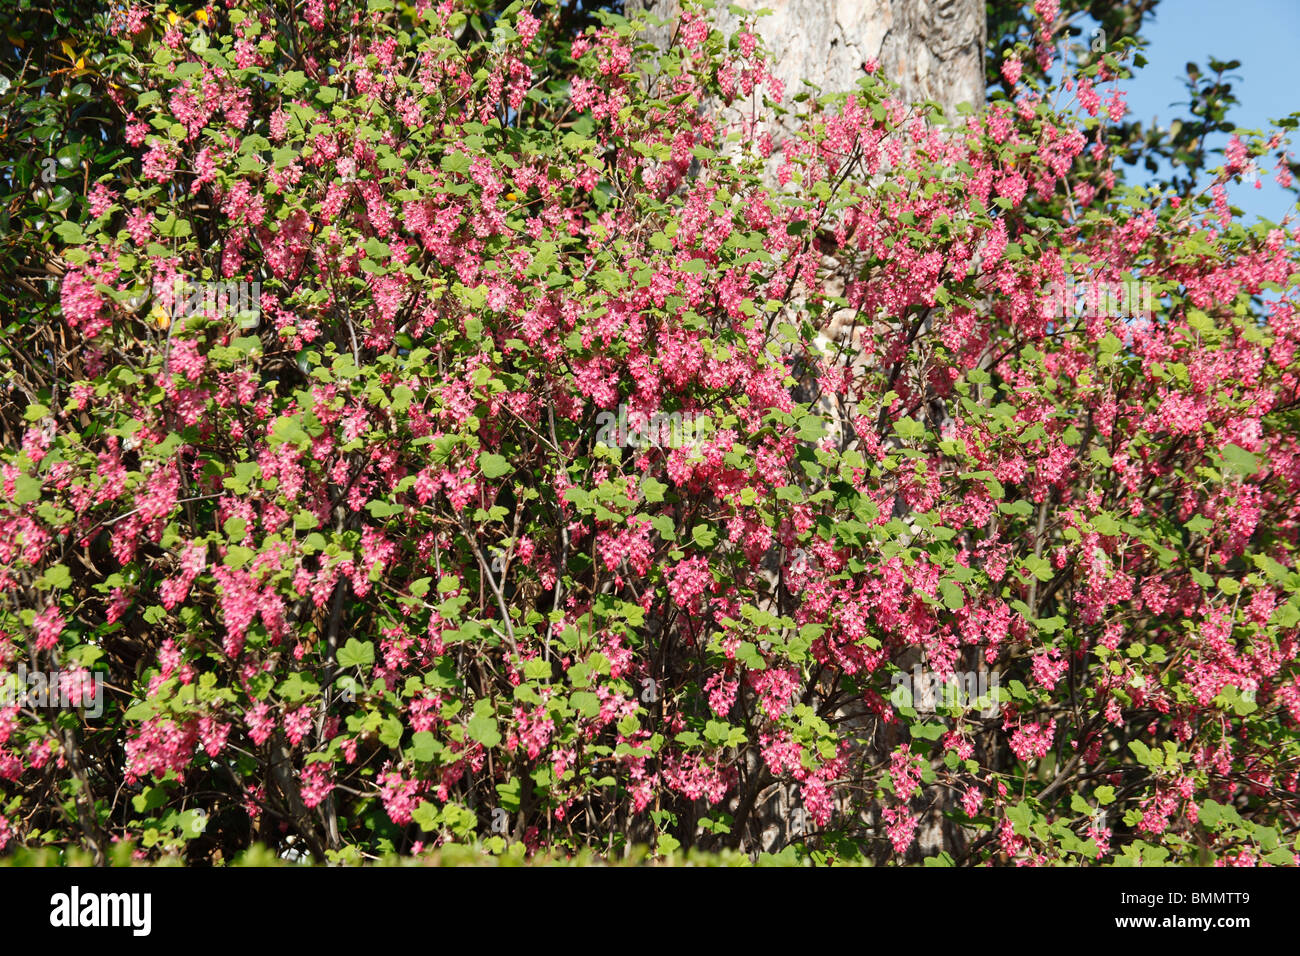 Blutjohannisbeere Hecke Flowering Currant Stockfotos Flowering Currant Bilder Alamy